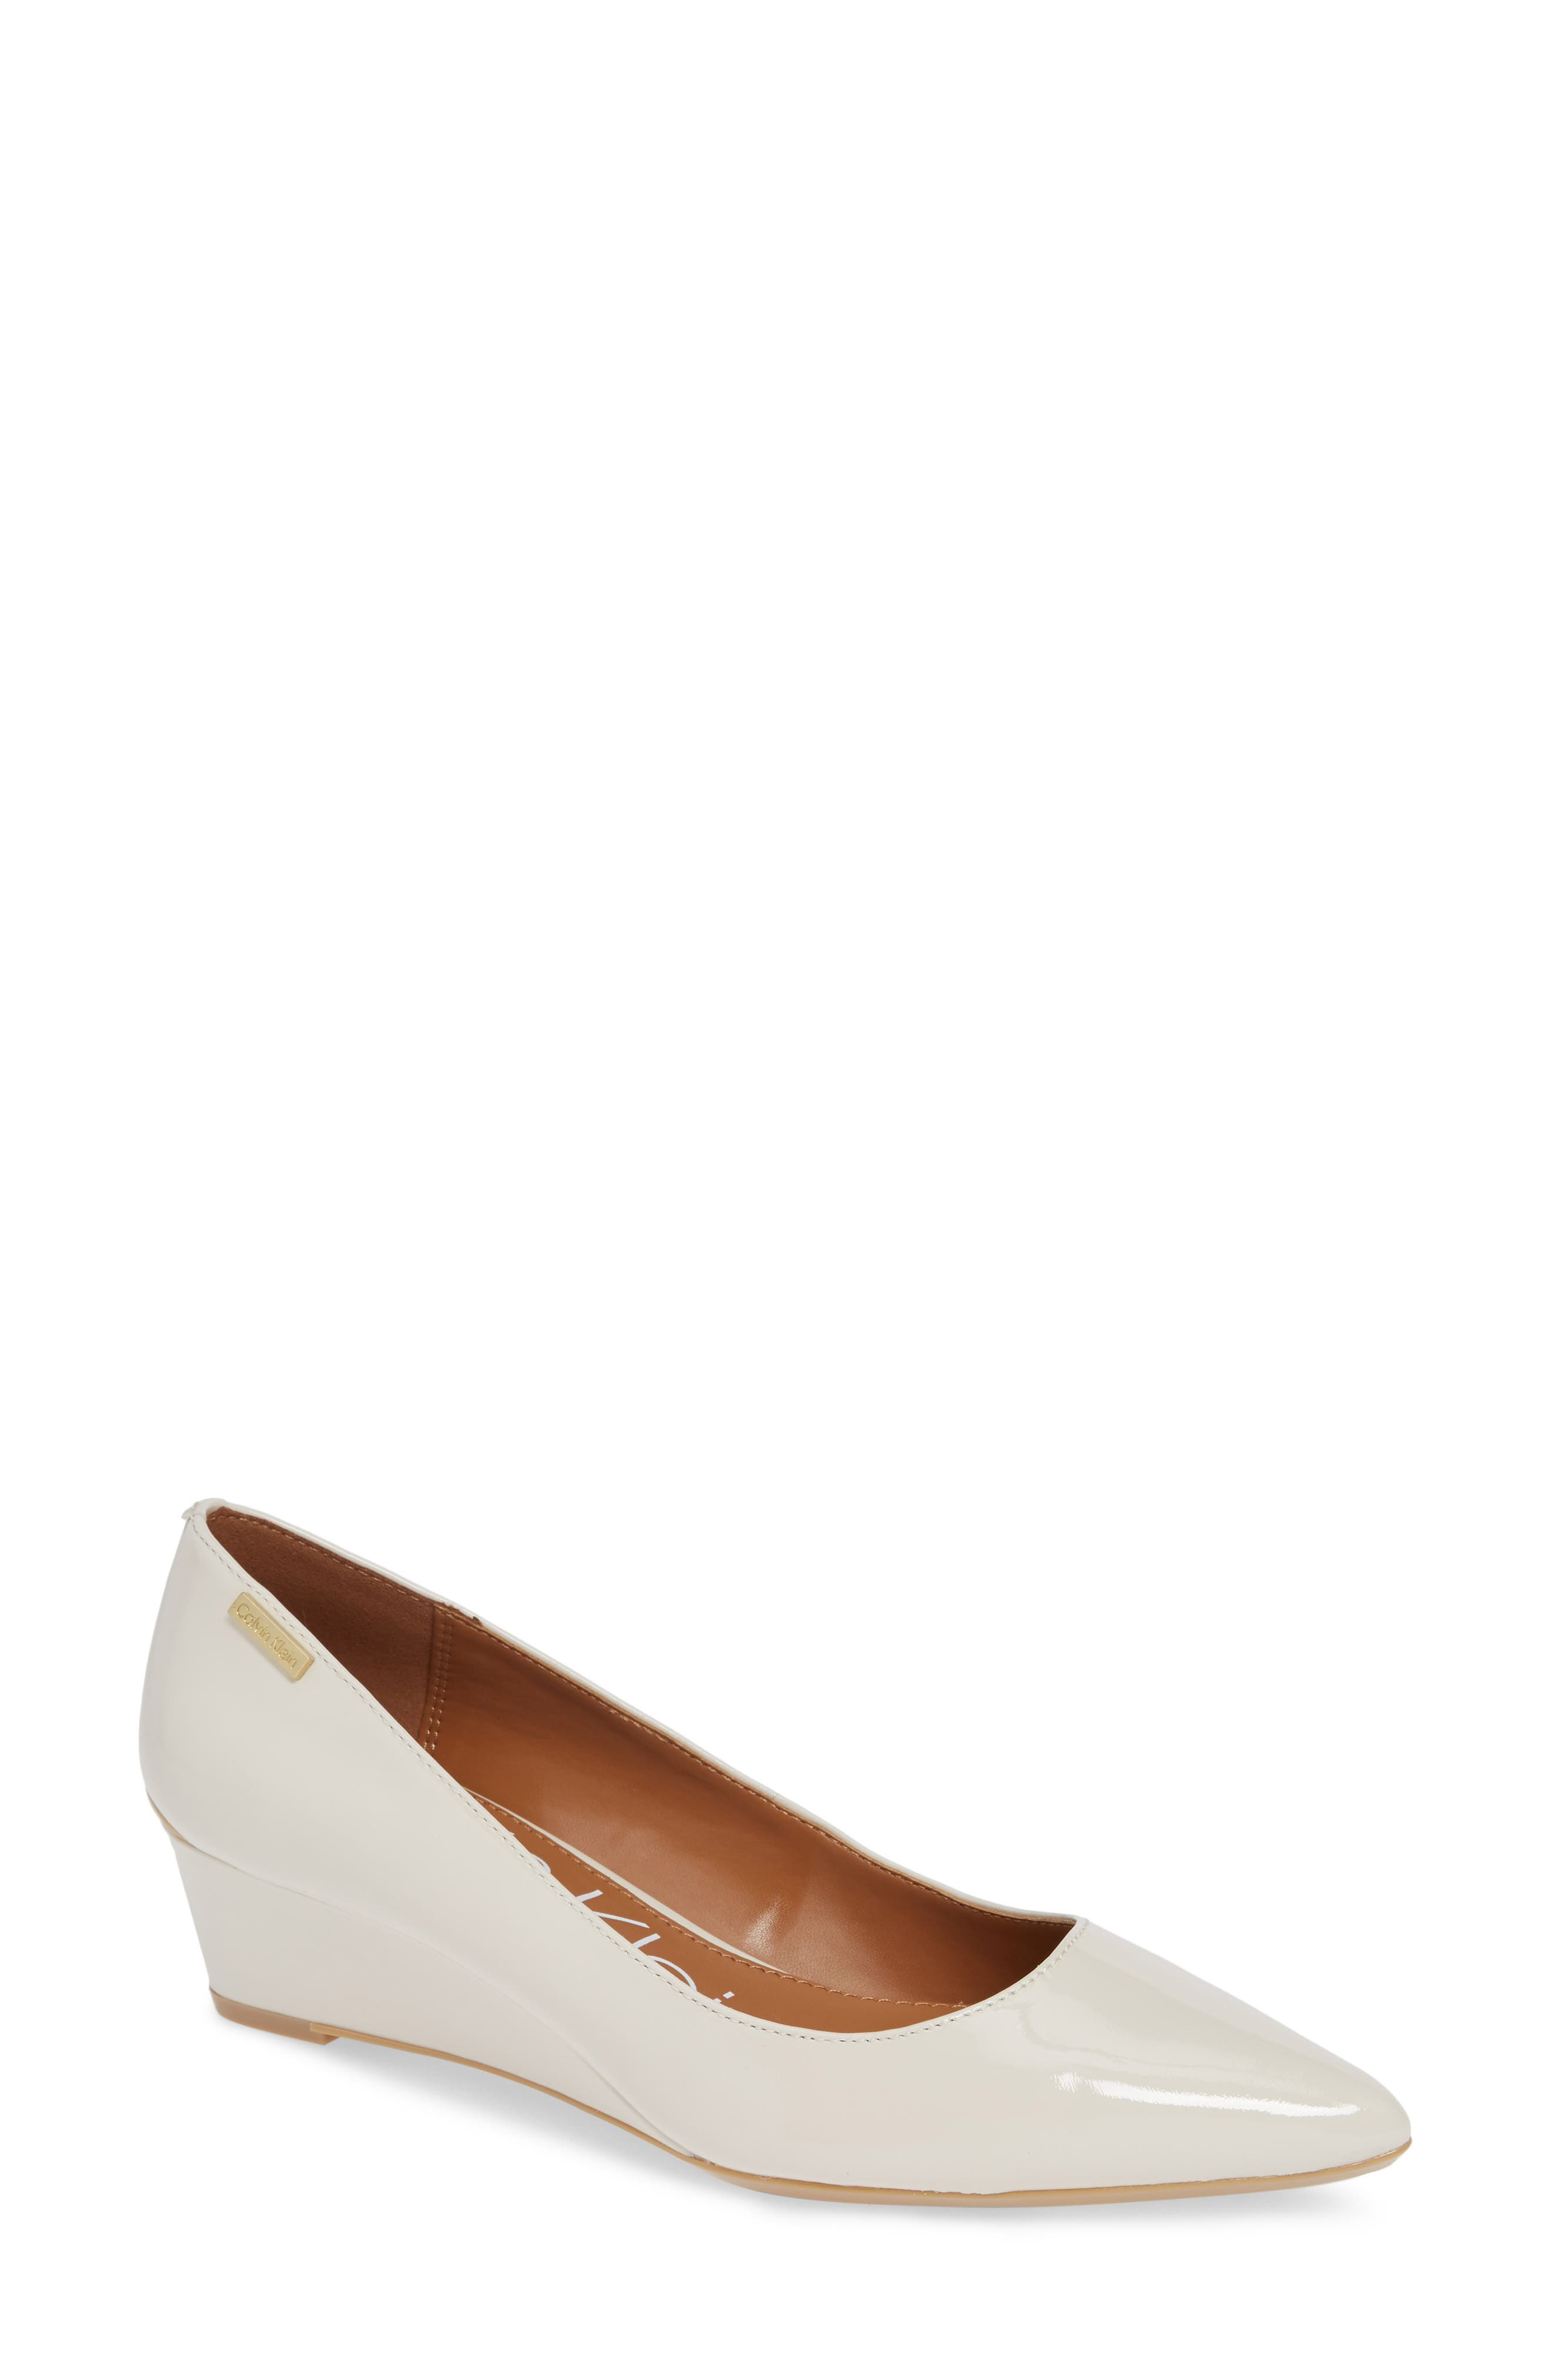 'Germina' Pointy Toe Wedge,                         Main,                         color, SOFT WHITE PATENT